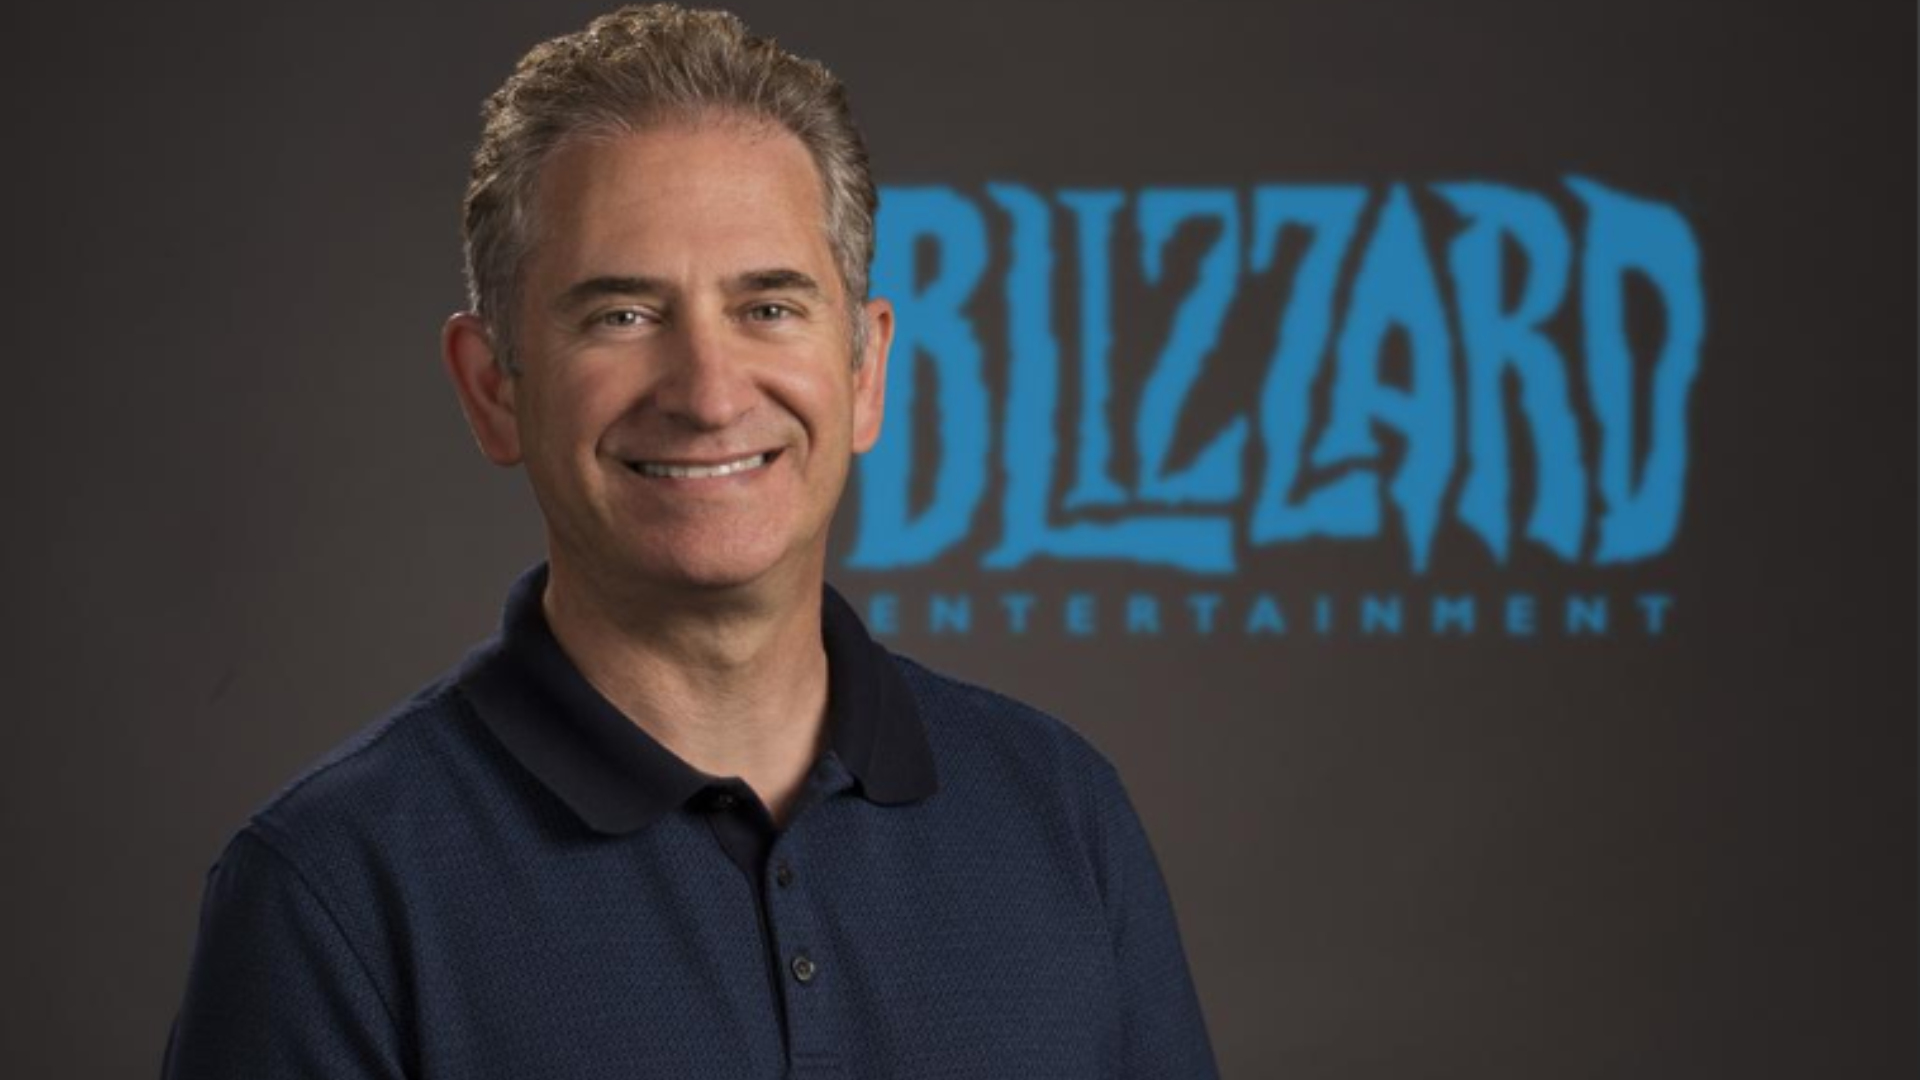 Blizzard Mike Morhaime